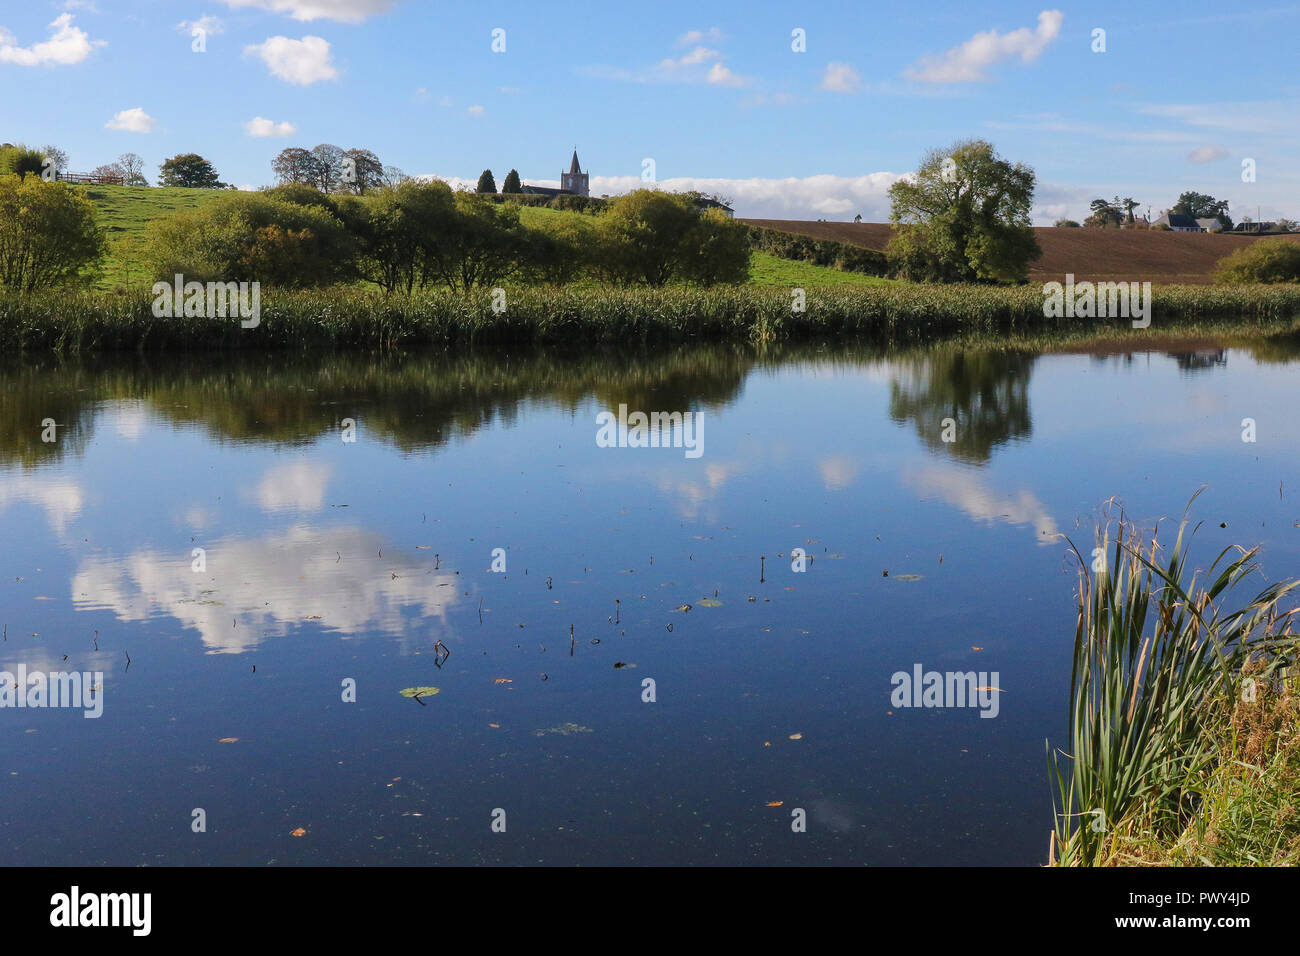 The Broadwater, Moira, Northern Ireland. 18 October 2018. UK weather - a glorious sunny day with lots of blue sky over Moira. High pressure dominates meaning little wind and great weather for out and about. Flat calm on the former Lagan Canal. Credit: David Hunter/Alamy Live News. - Stock Image